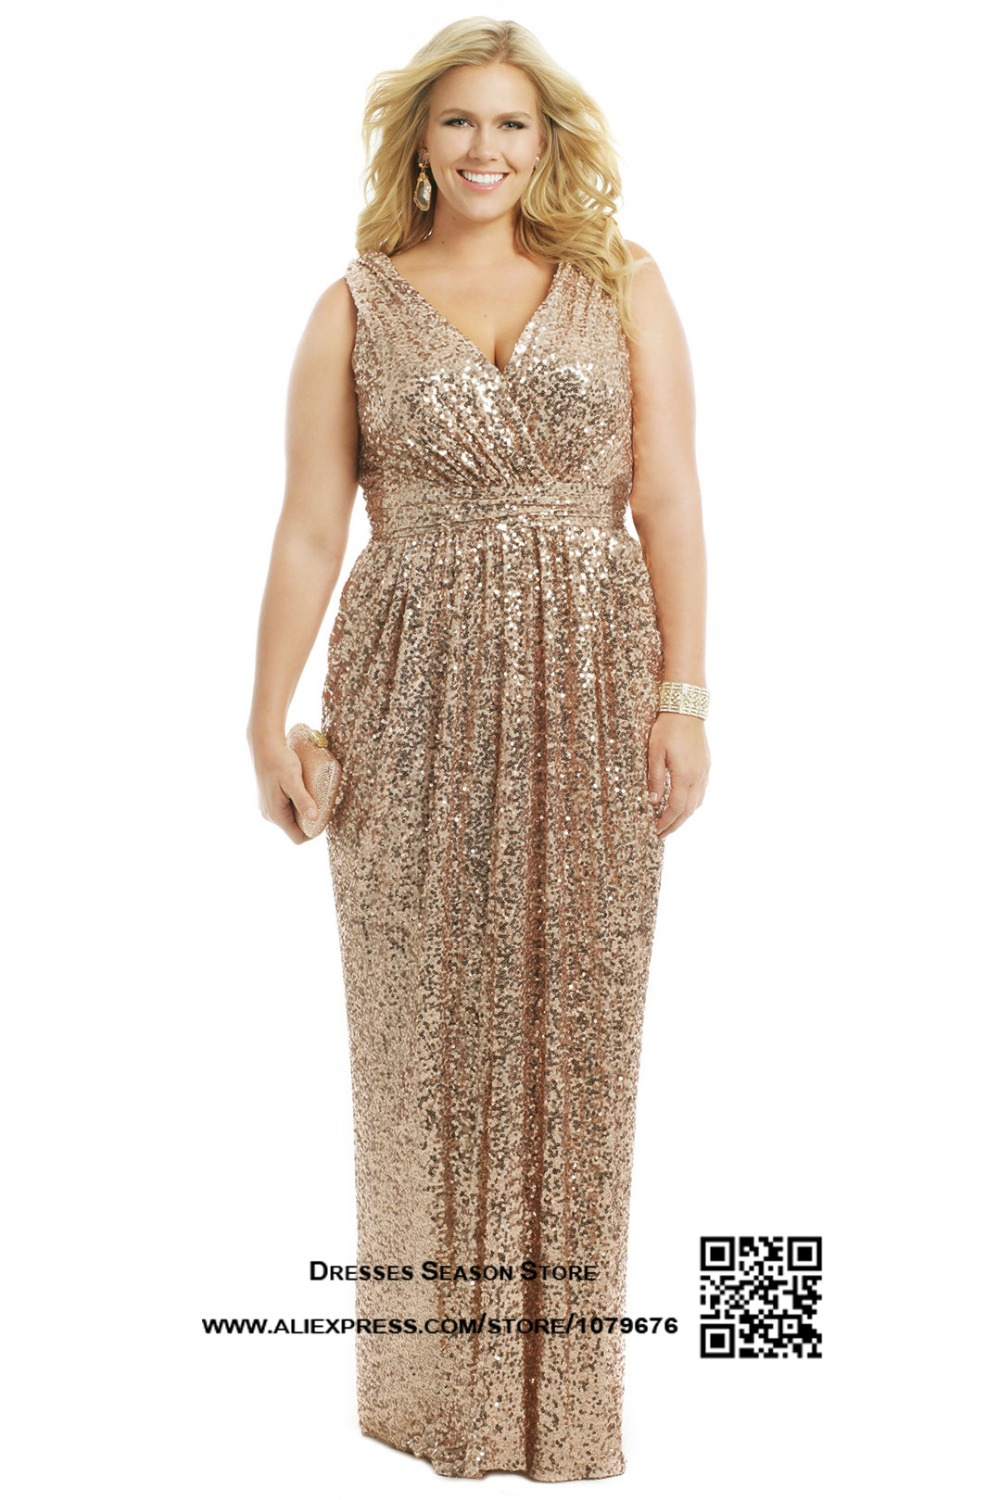 Plus size clothing for tall women